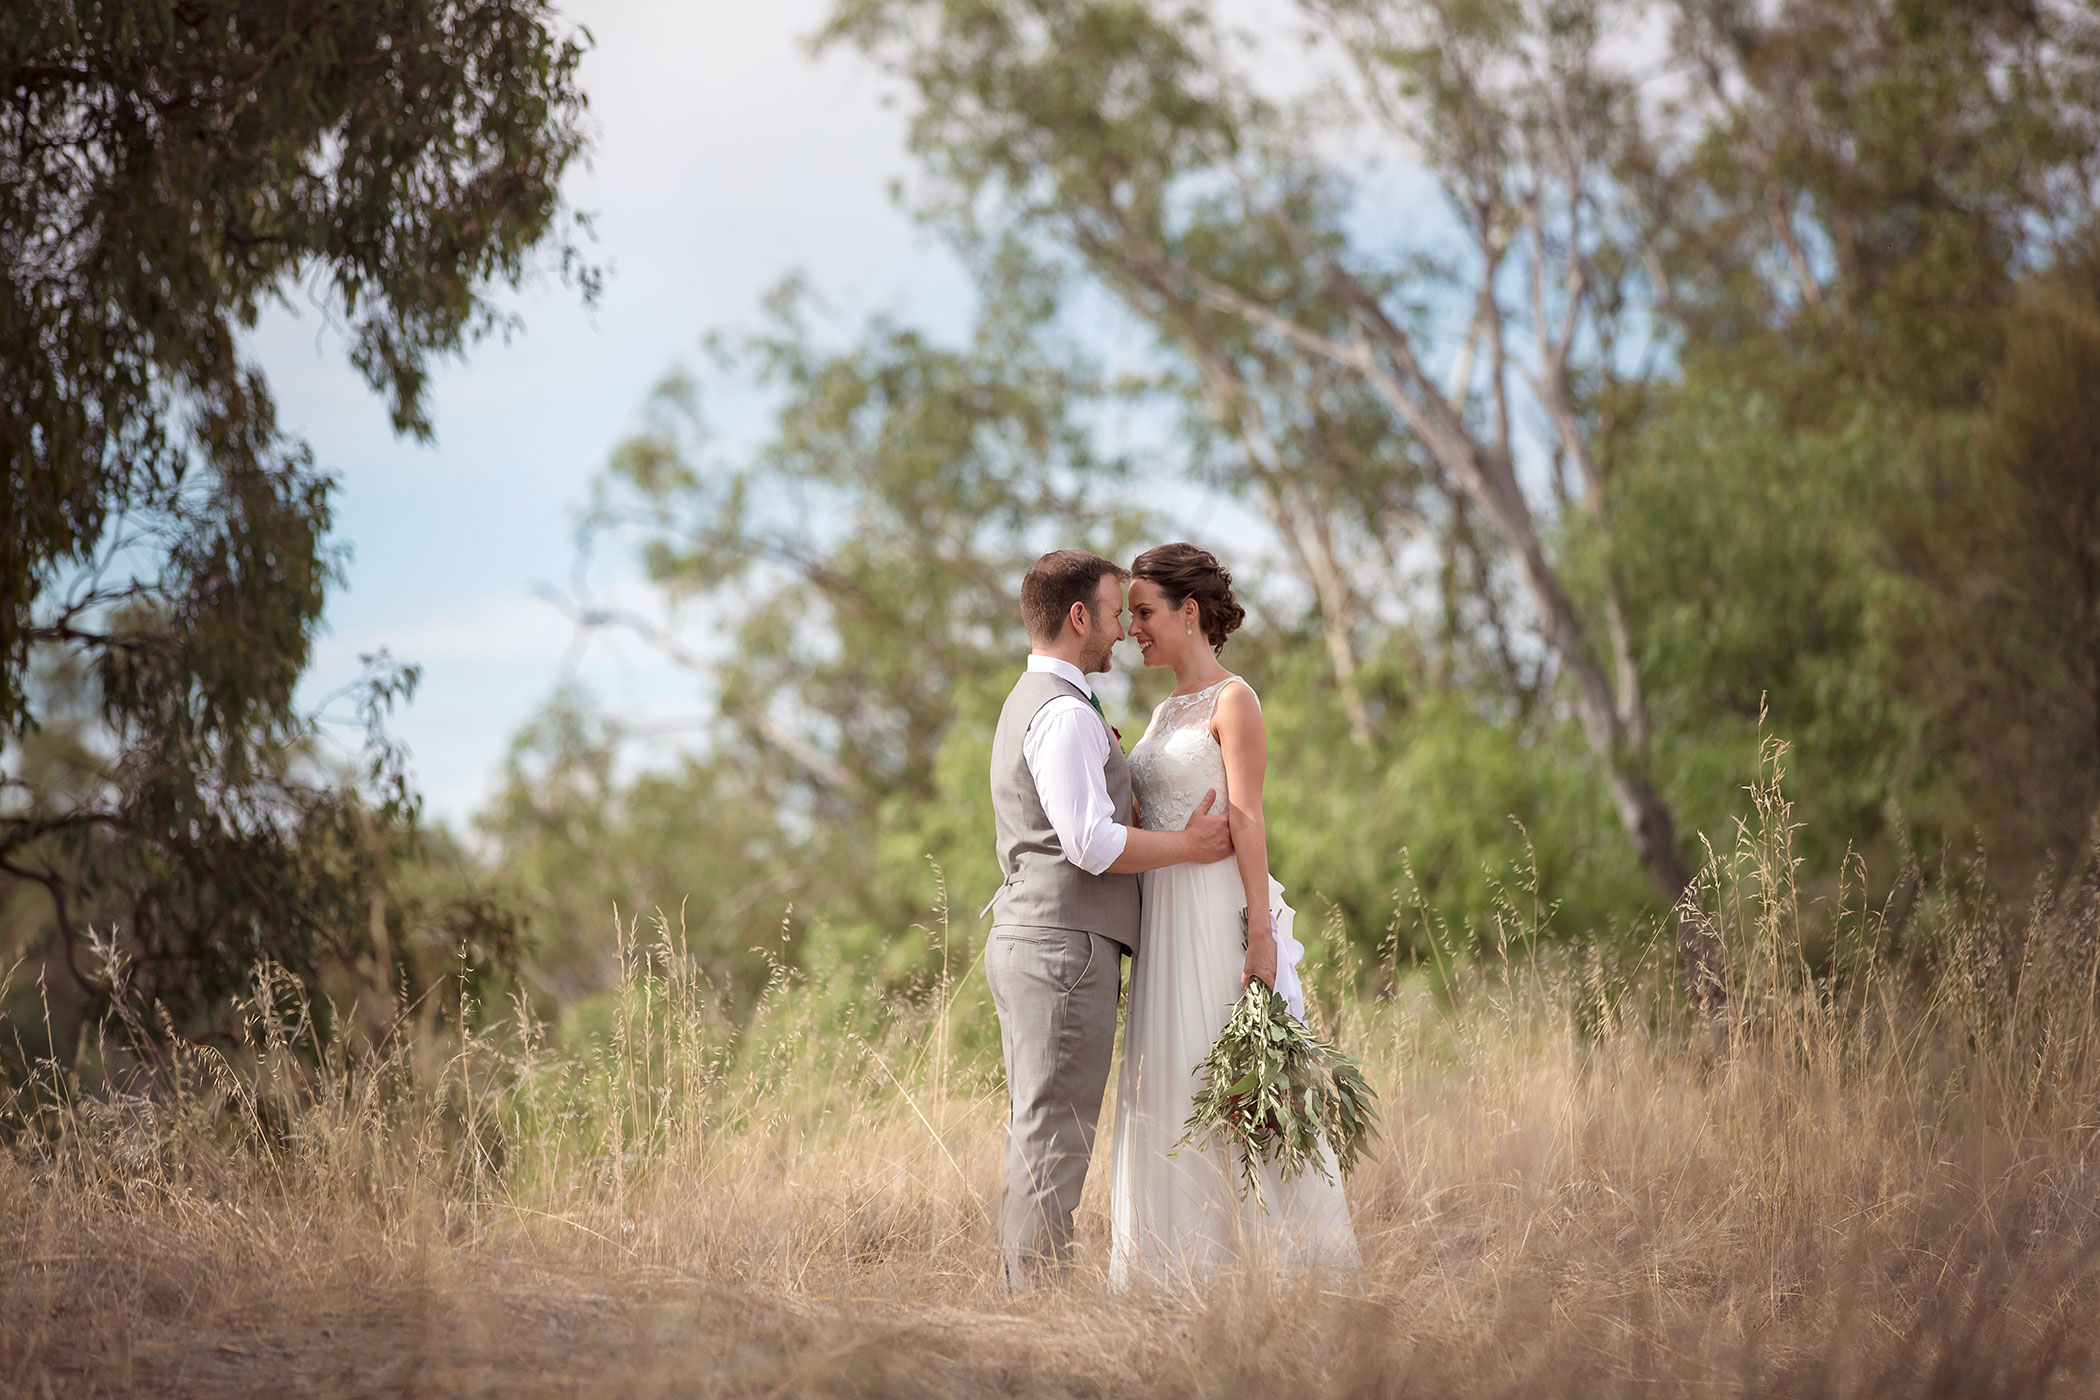 @jasonrobinsphotographyau's cover photo for 'Corowa Chocolate and Whisky Factory Wedding - Prue & Thomas. AIPP Photographer Jason Robins'